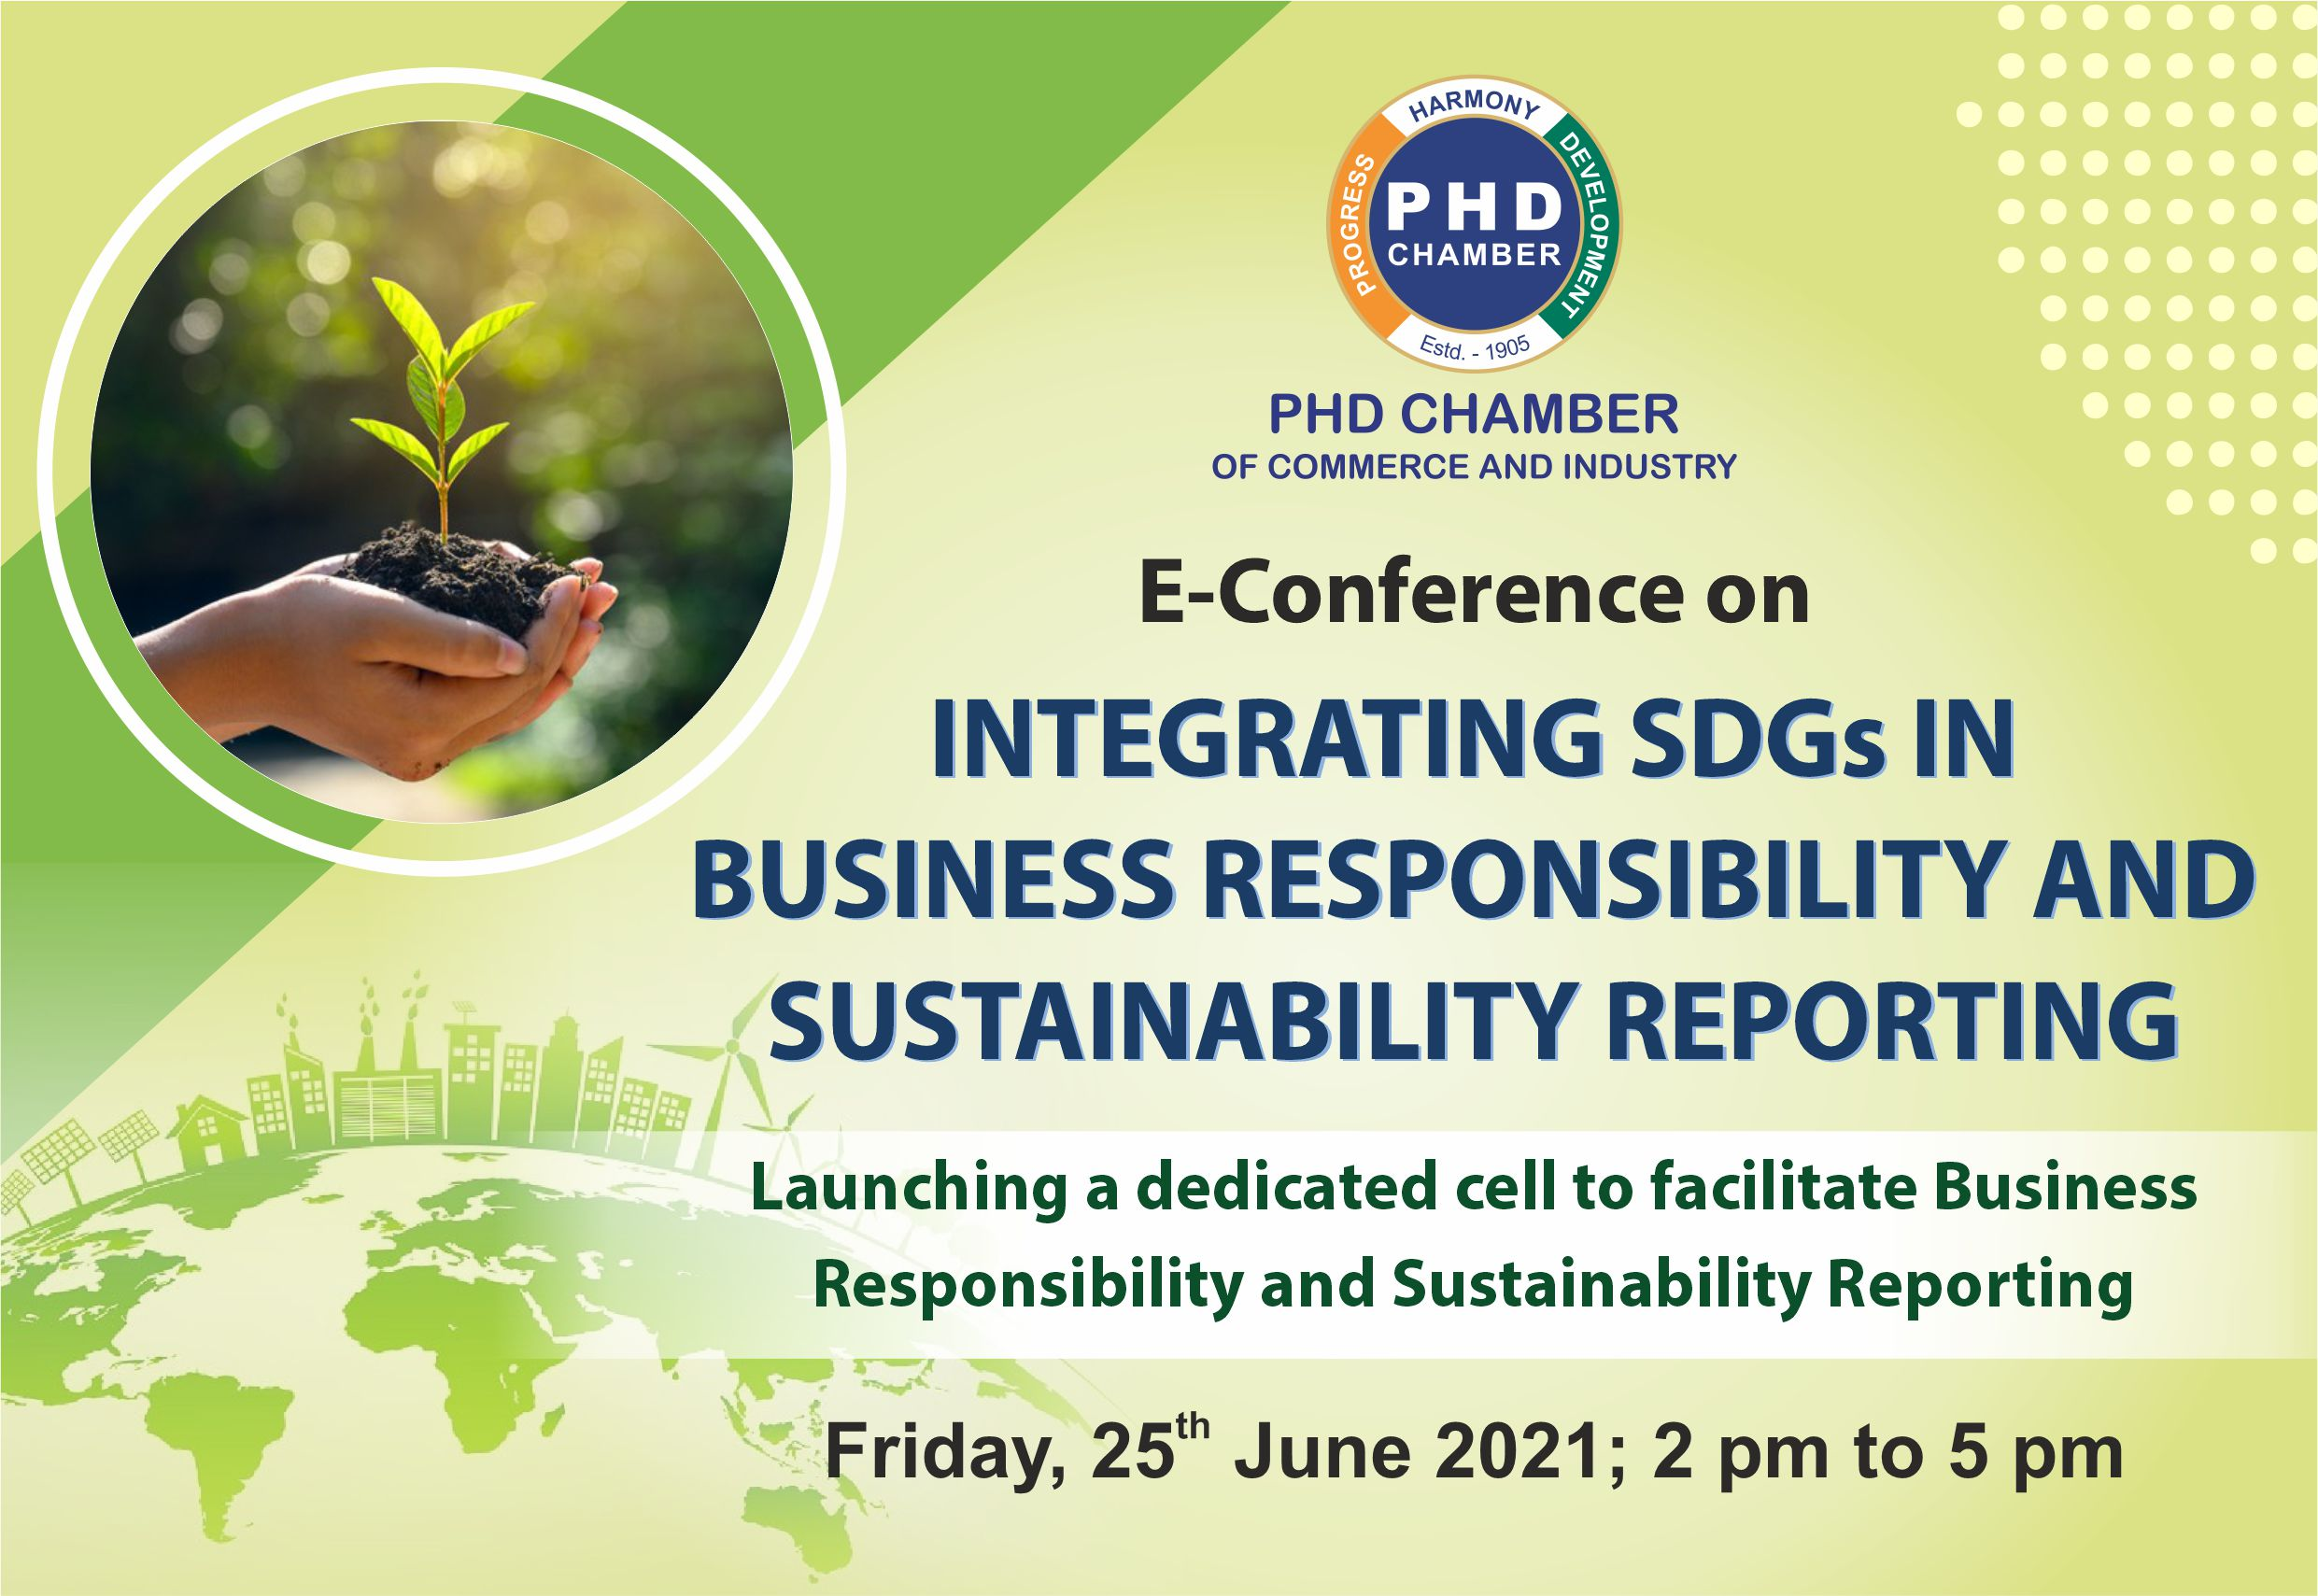 E-Conference on Integrating SDGs in Business Responsibility and Sustainability